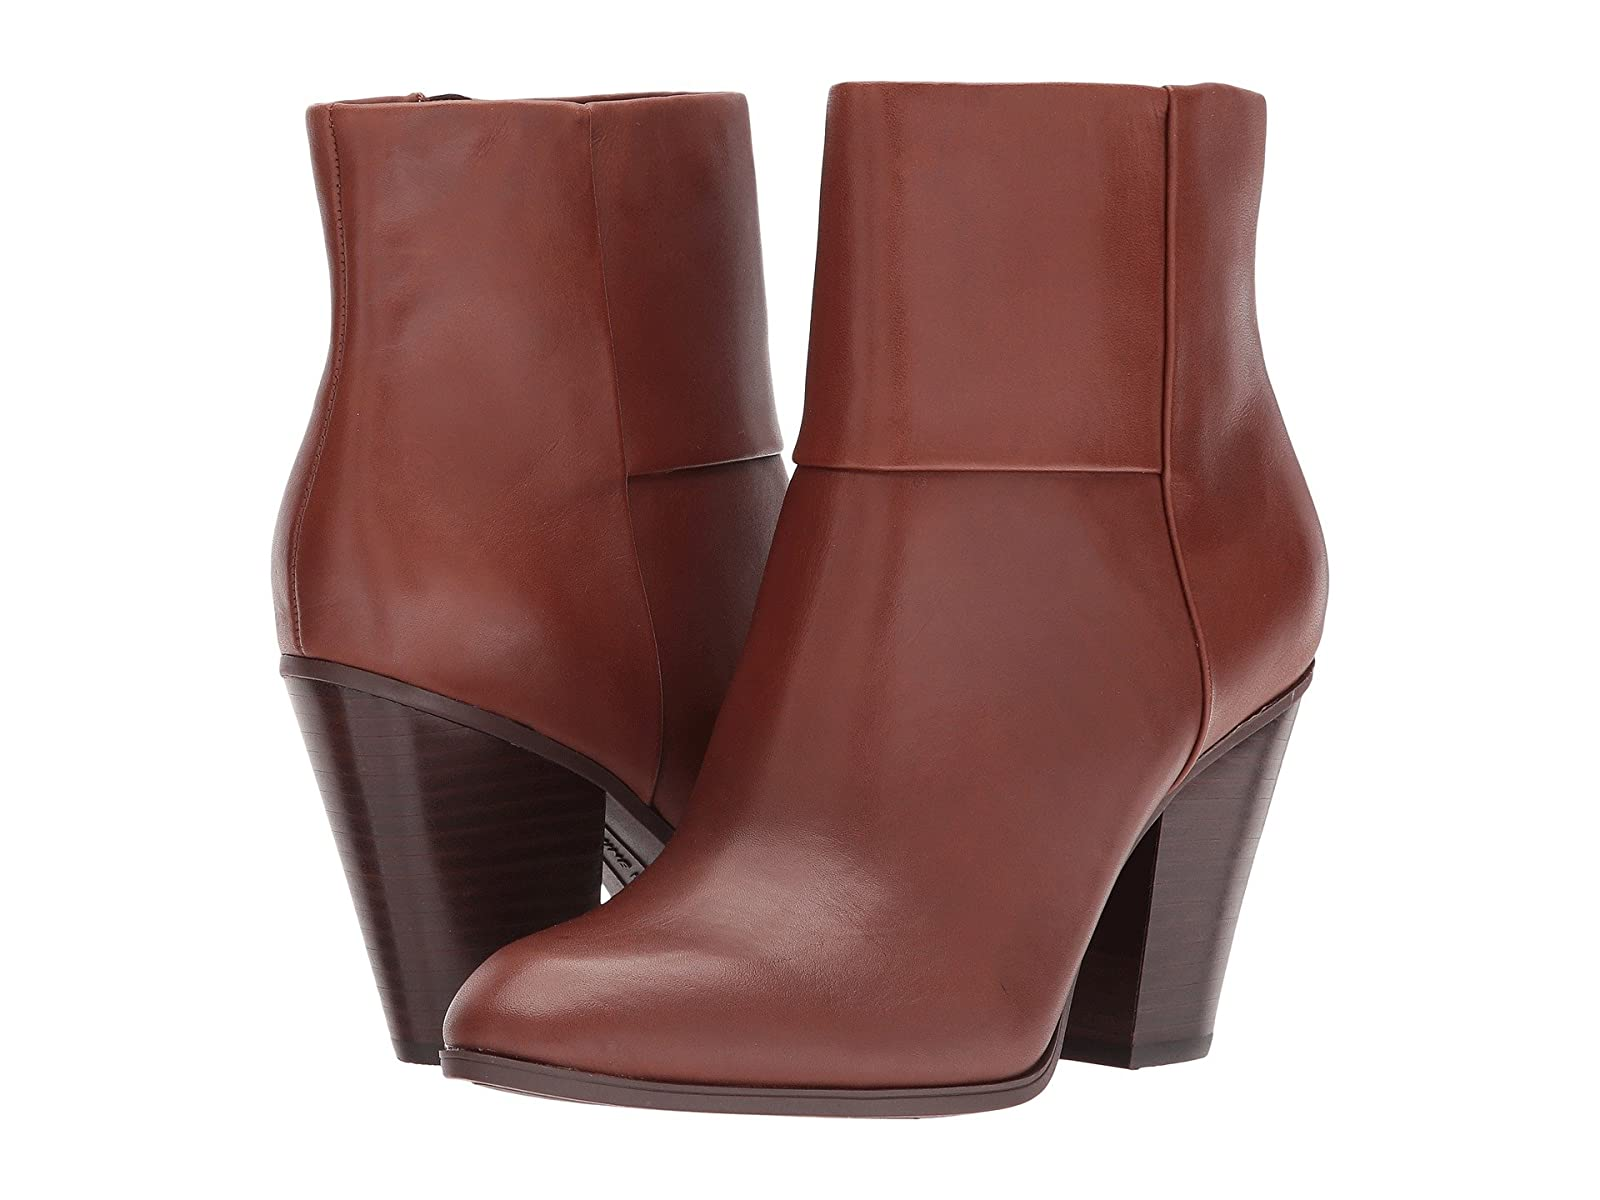 Nine West HollieCheap and distinctive eye-catching shoes